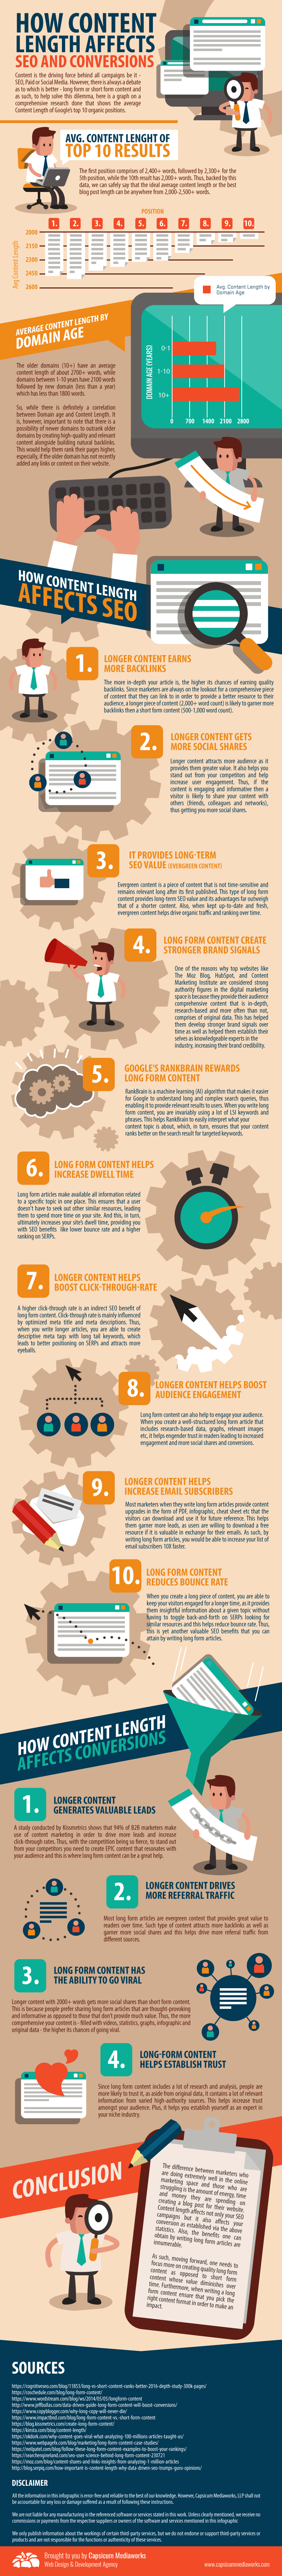 How Content Length Impacts SEO and Conversions